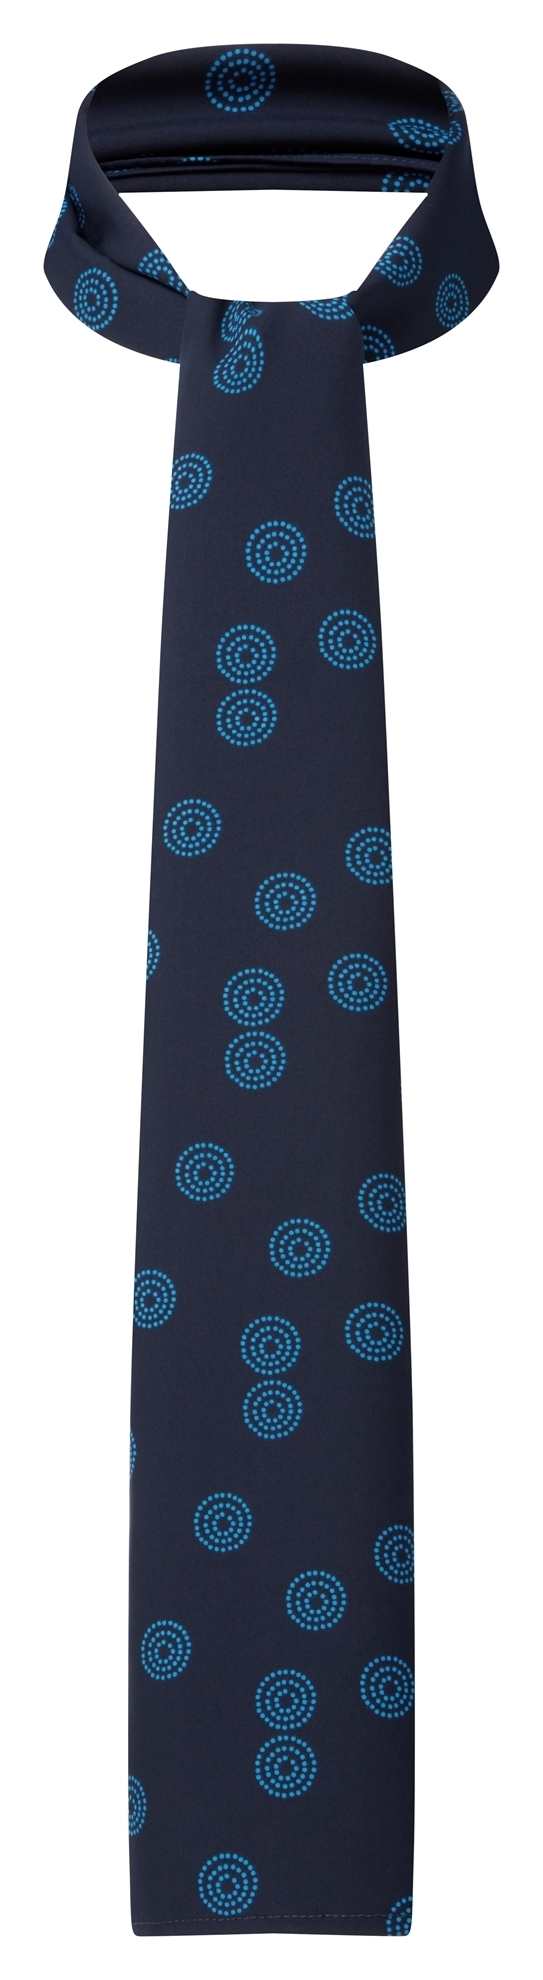 Picture of Long Scarf - Navy/Blue Sienna Print